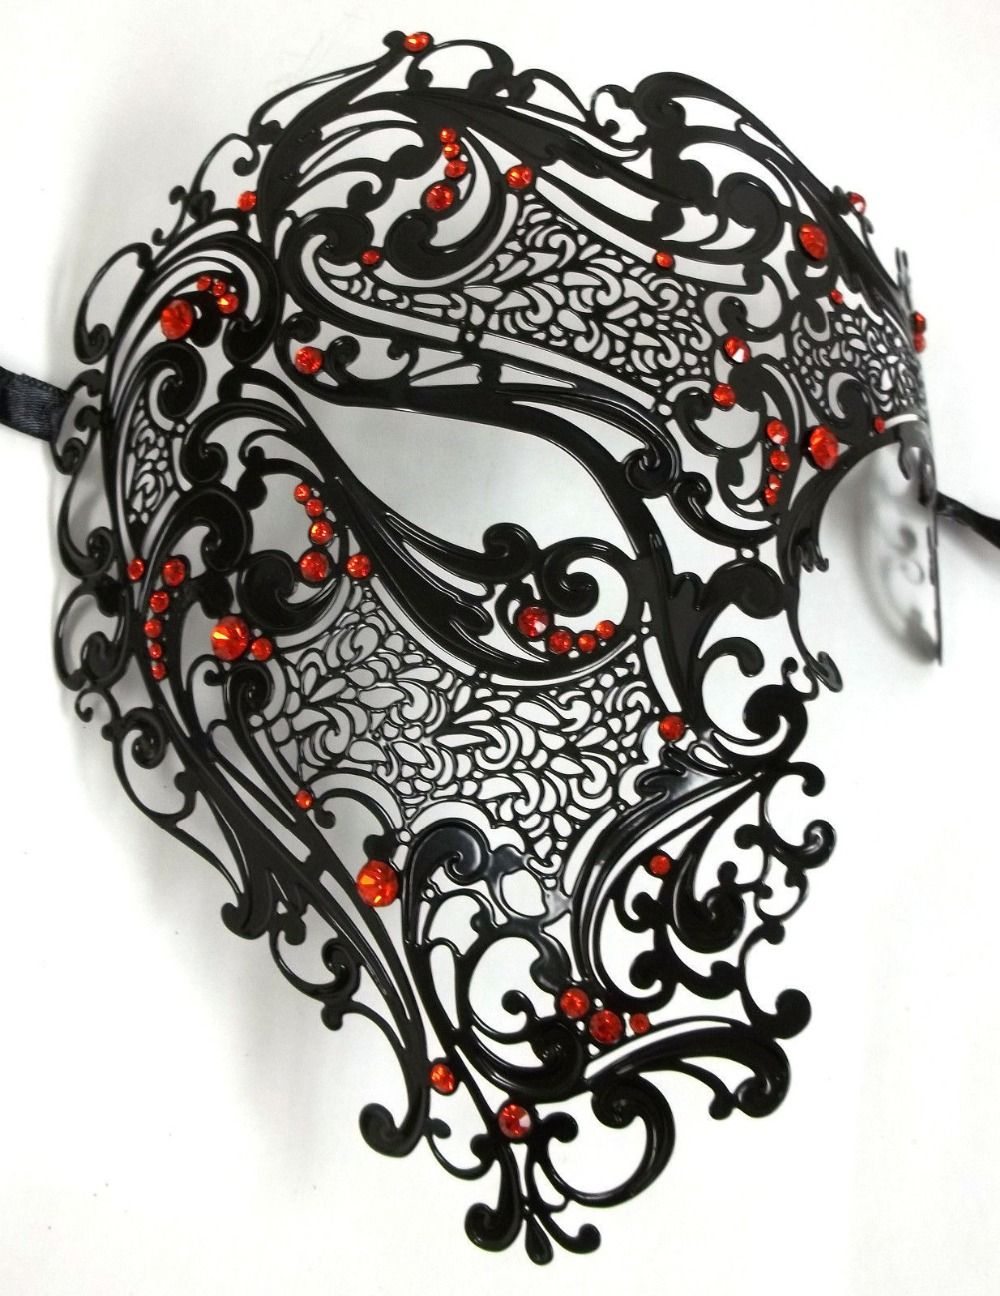 Masquerade mask masquerade mask vine mask metal lace masquerade - Free Shipping Silver Black Gold 3 Color Phantom Laser Cut Venetian Mask Masquerade Metal Men